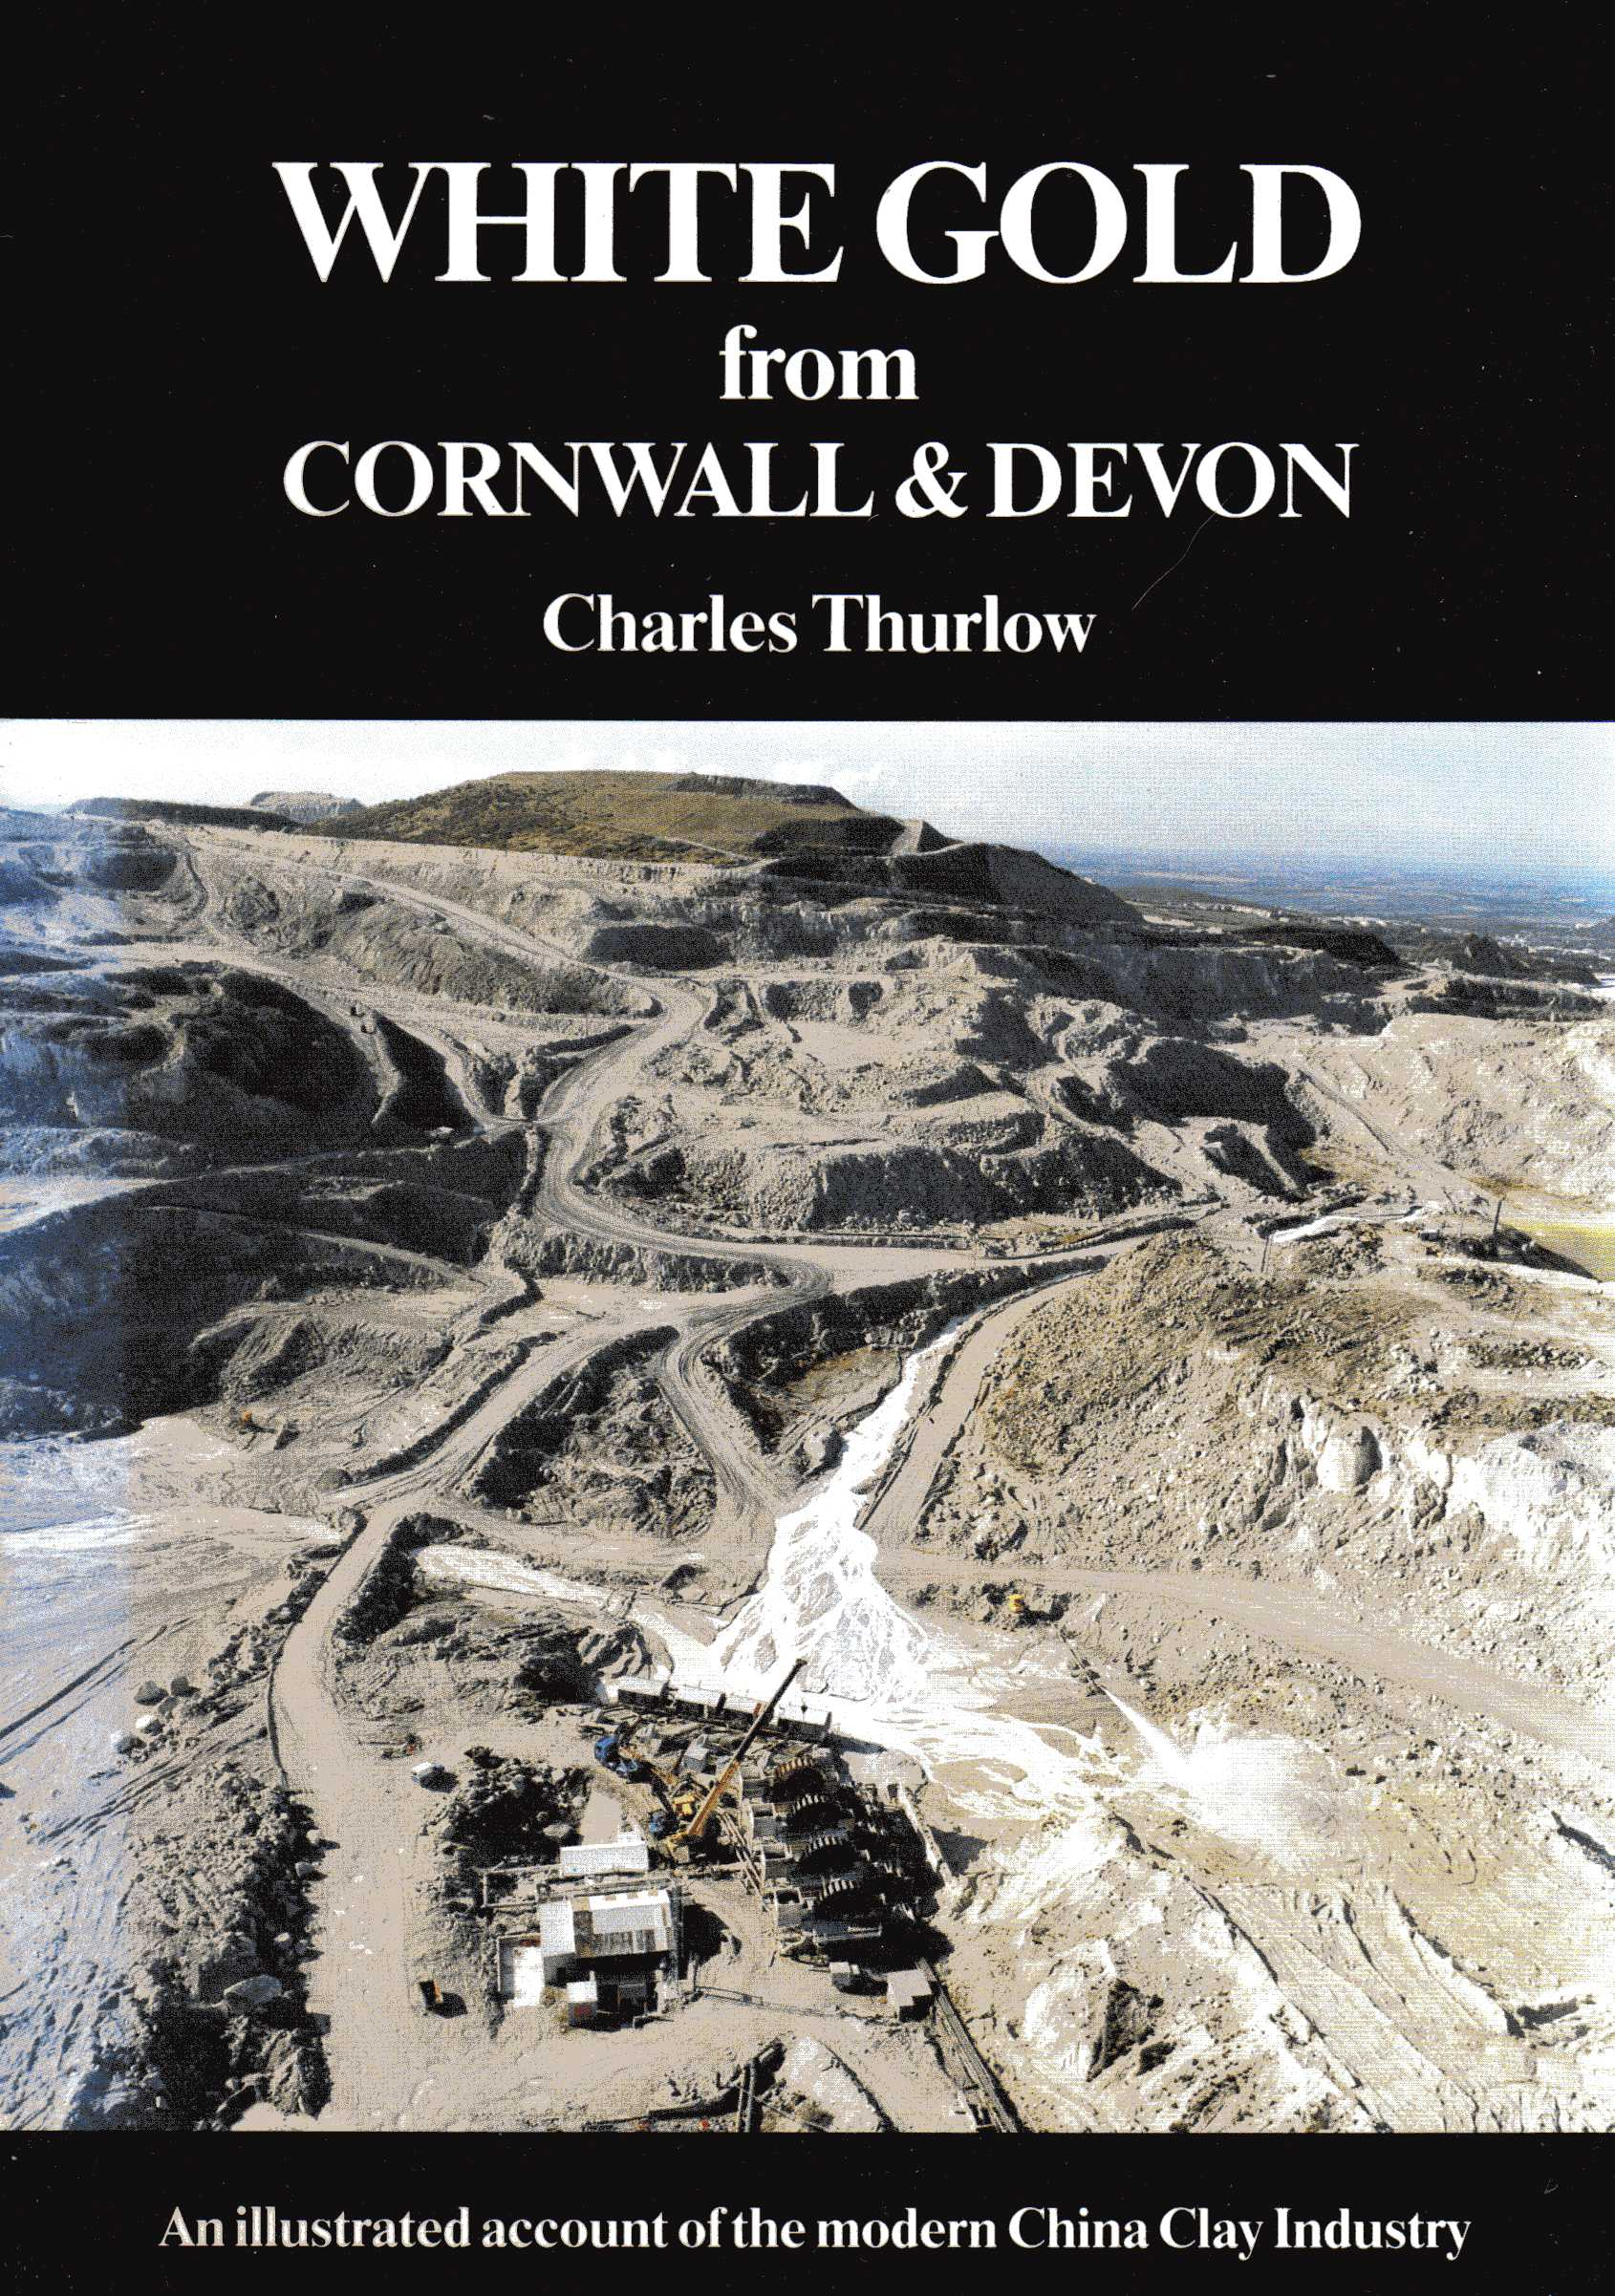 [USED] White Gold from Cornwall & Devon